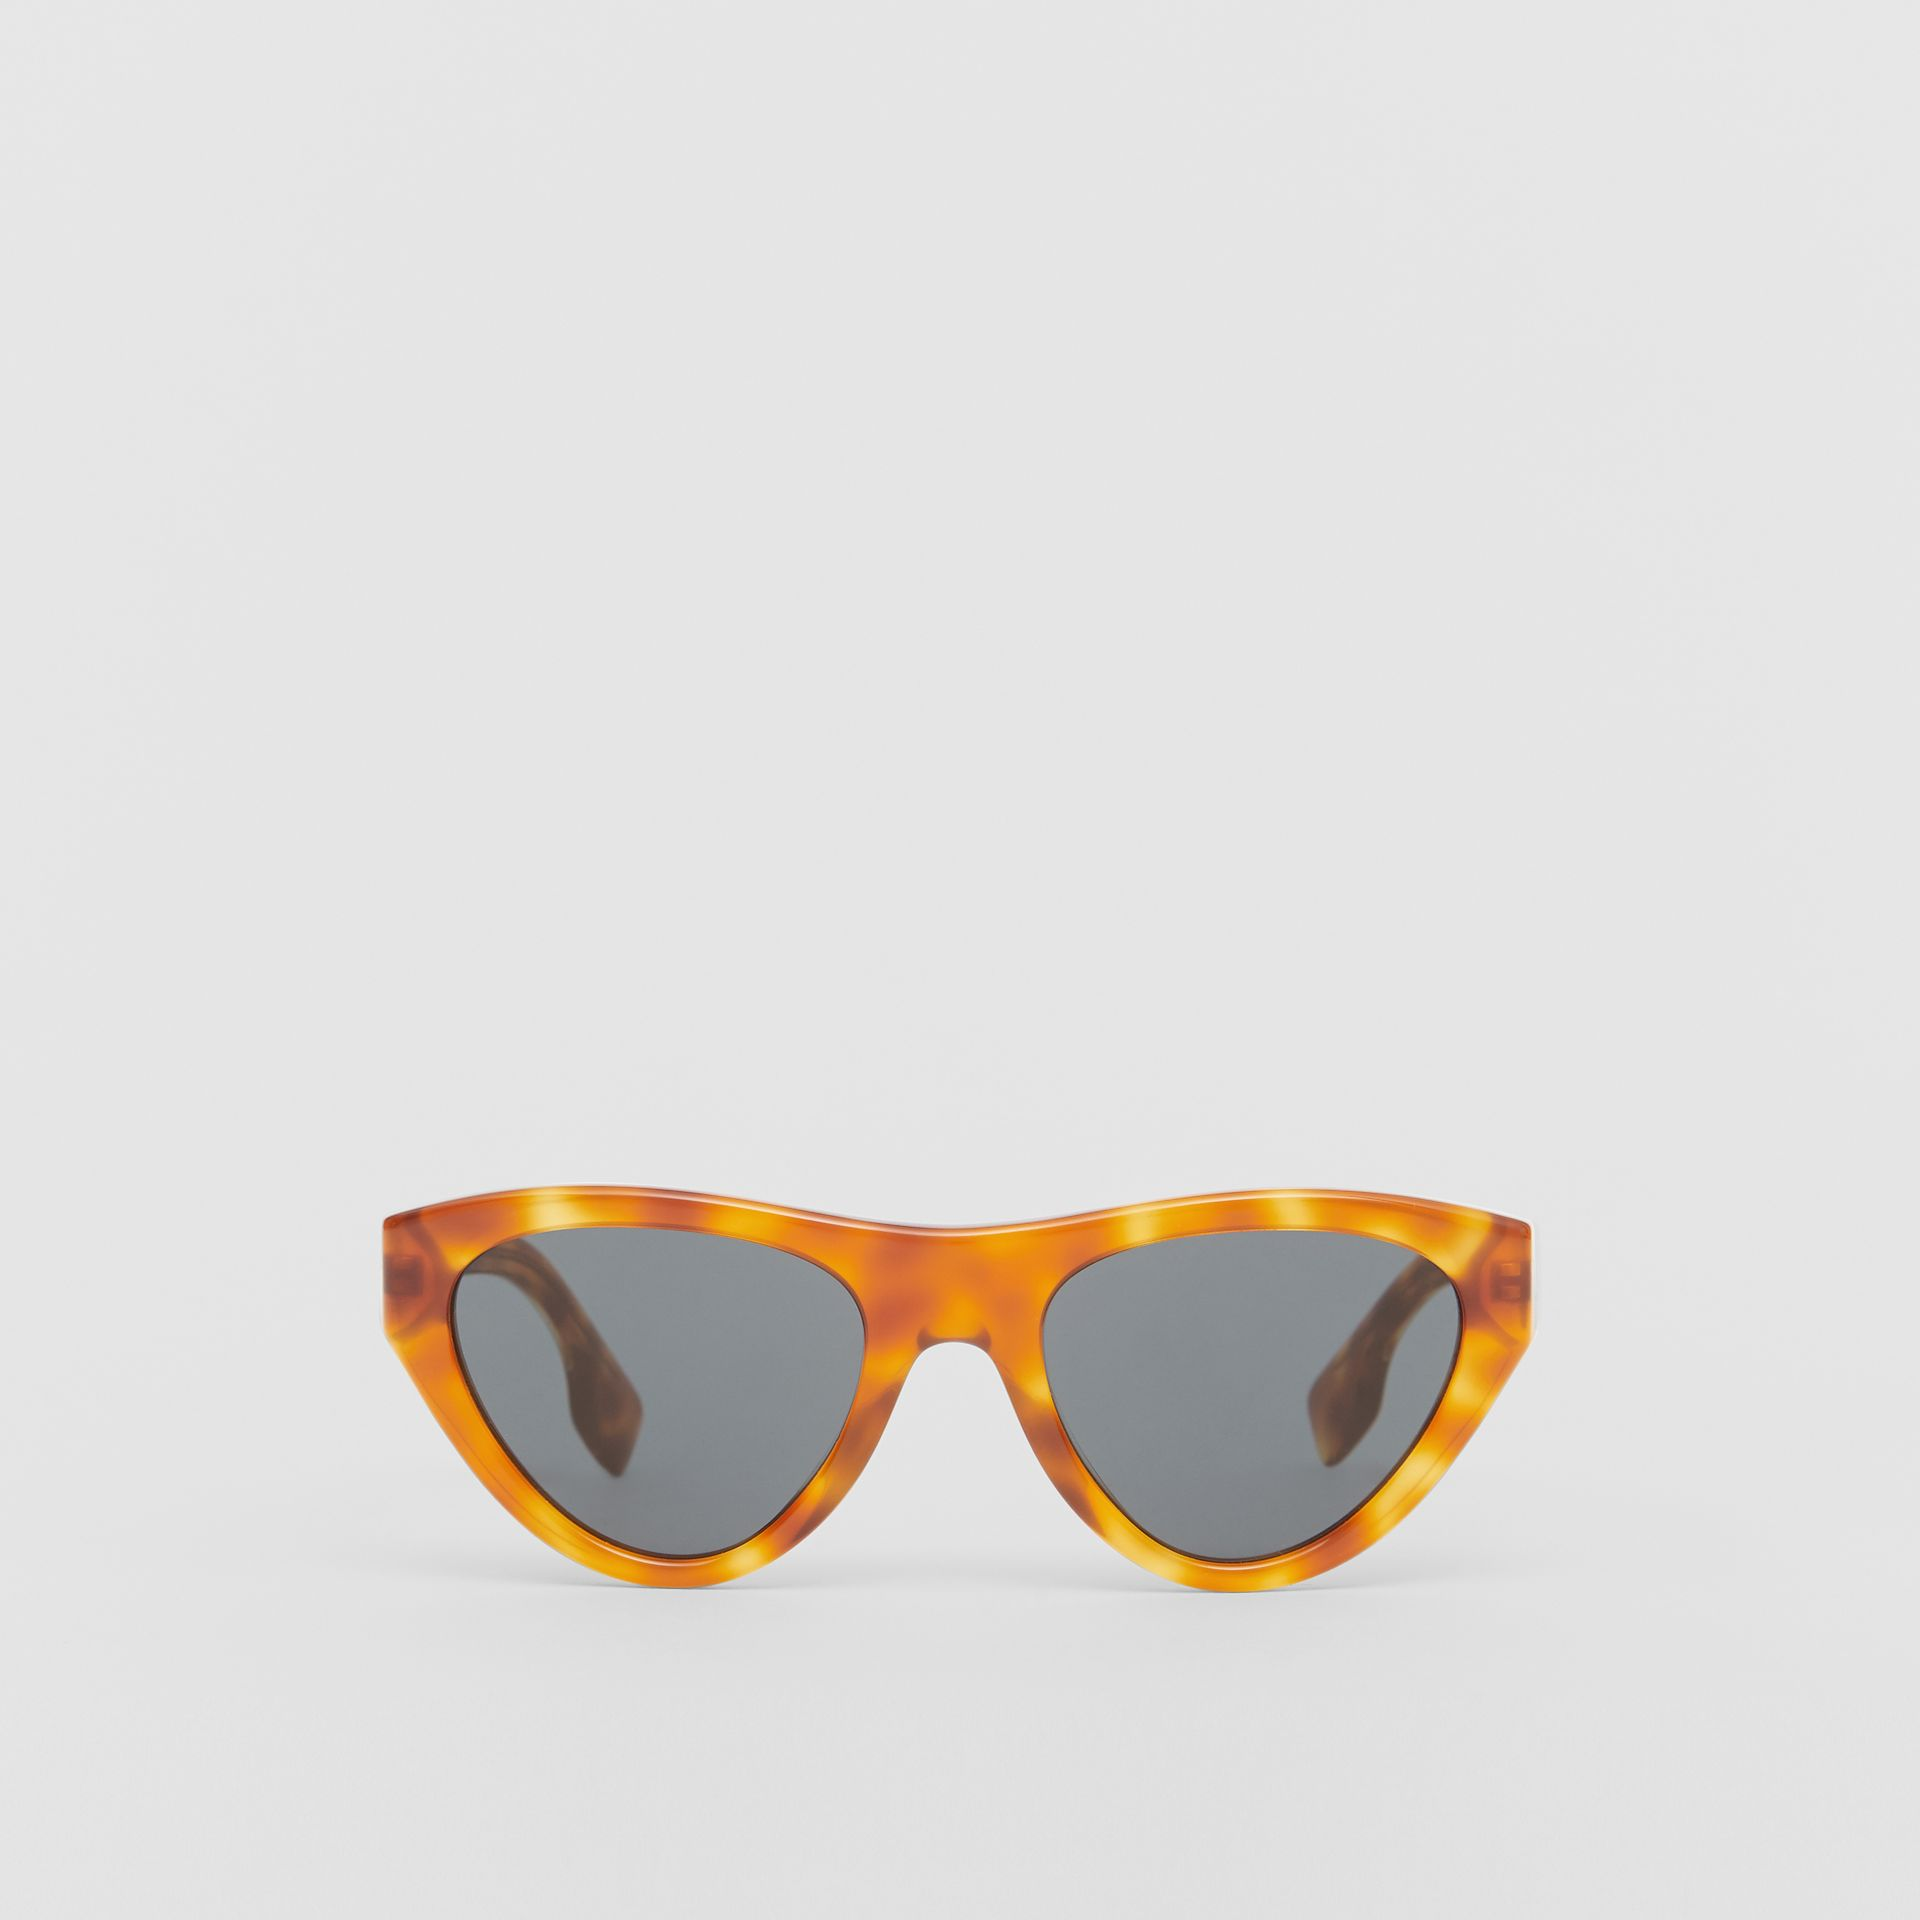 Triangular Frame Sunglasses in Tortoise Amber - Women | Burberry Australia - gallery image 0